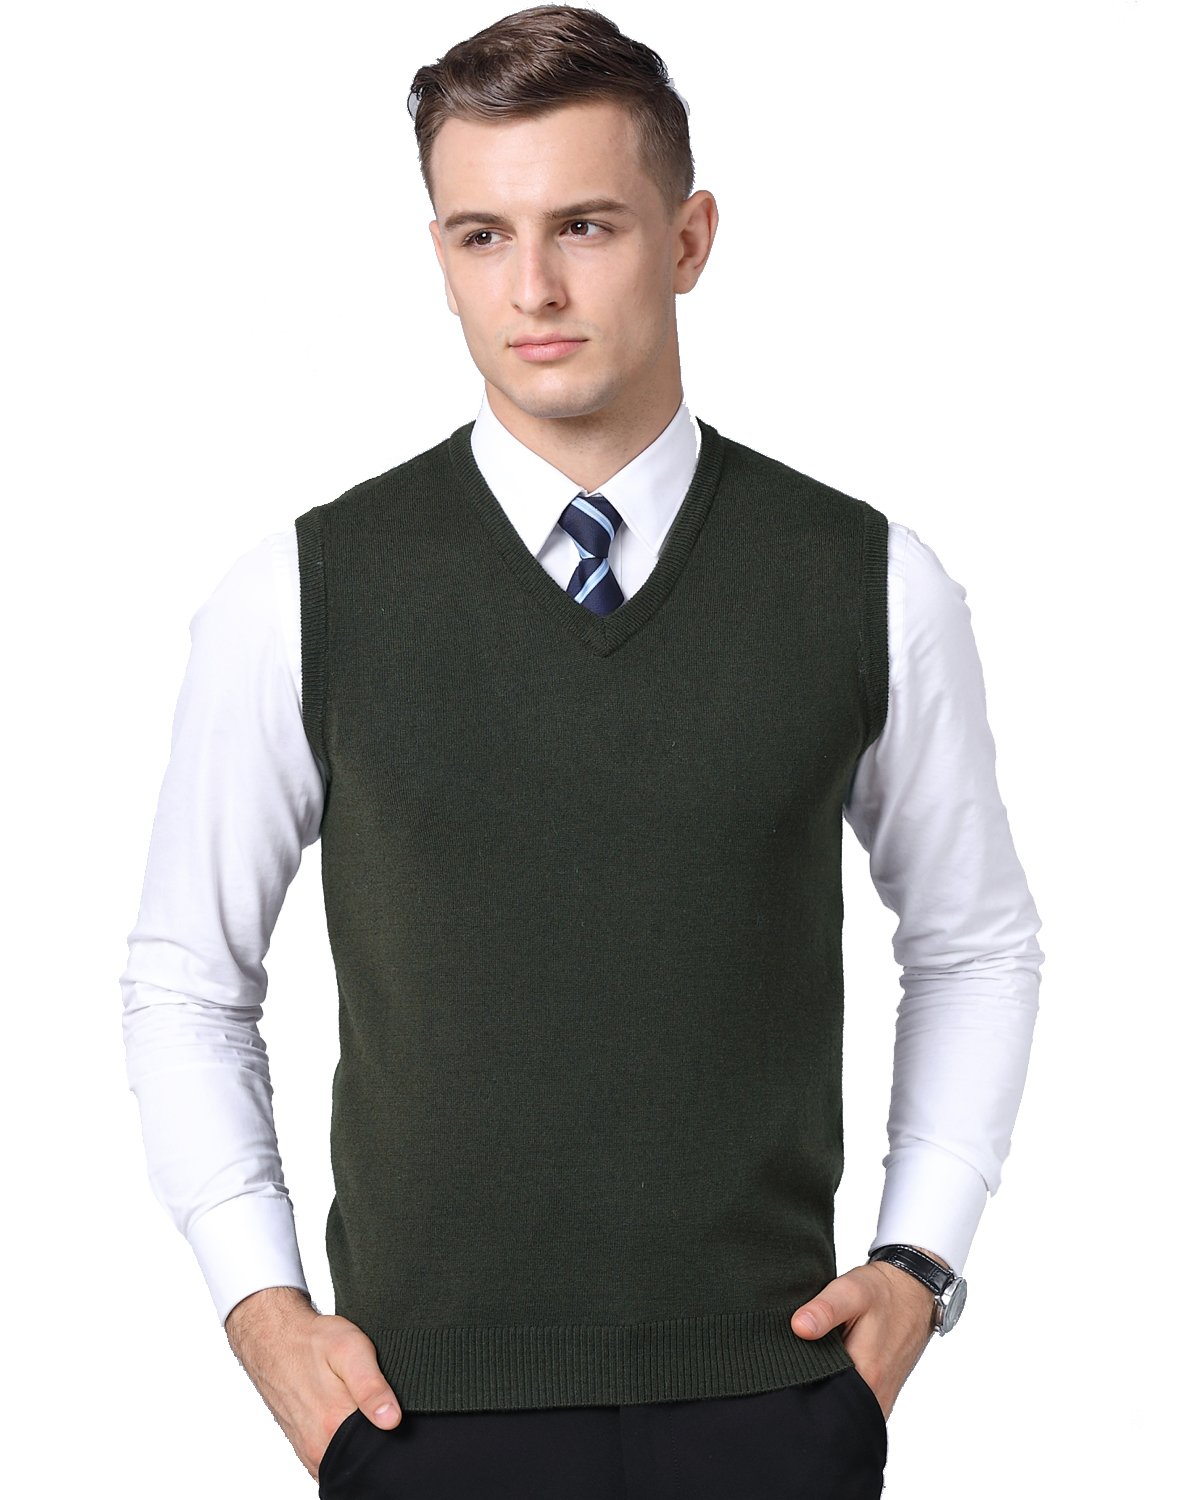 Kinlonsair Mens Casual Slim Fit Solid Lightweight V-Neck Sweater Vest (Large (US), Army Green)